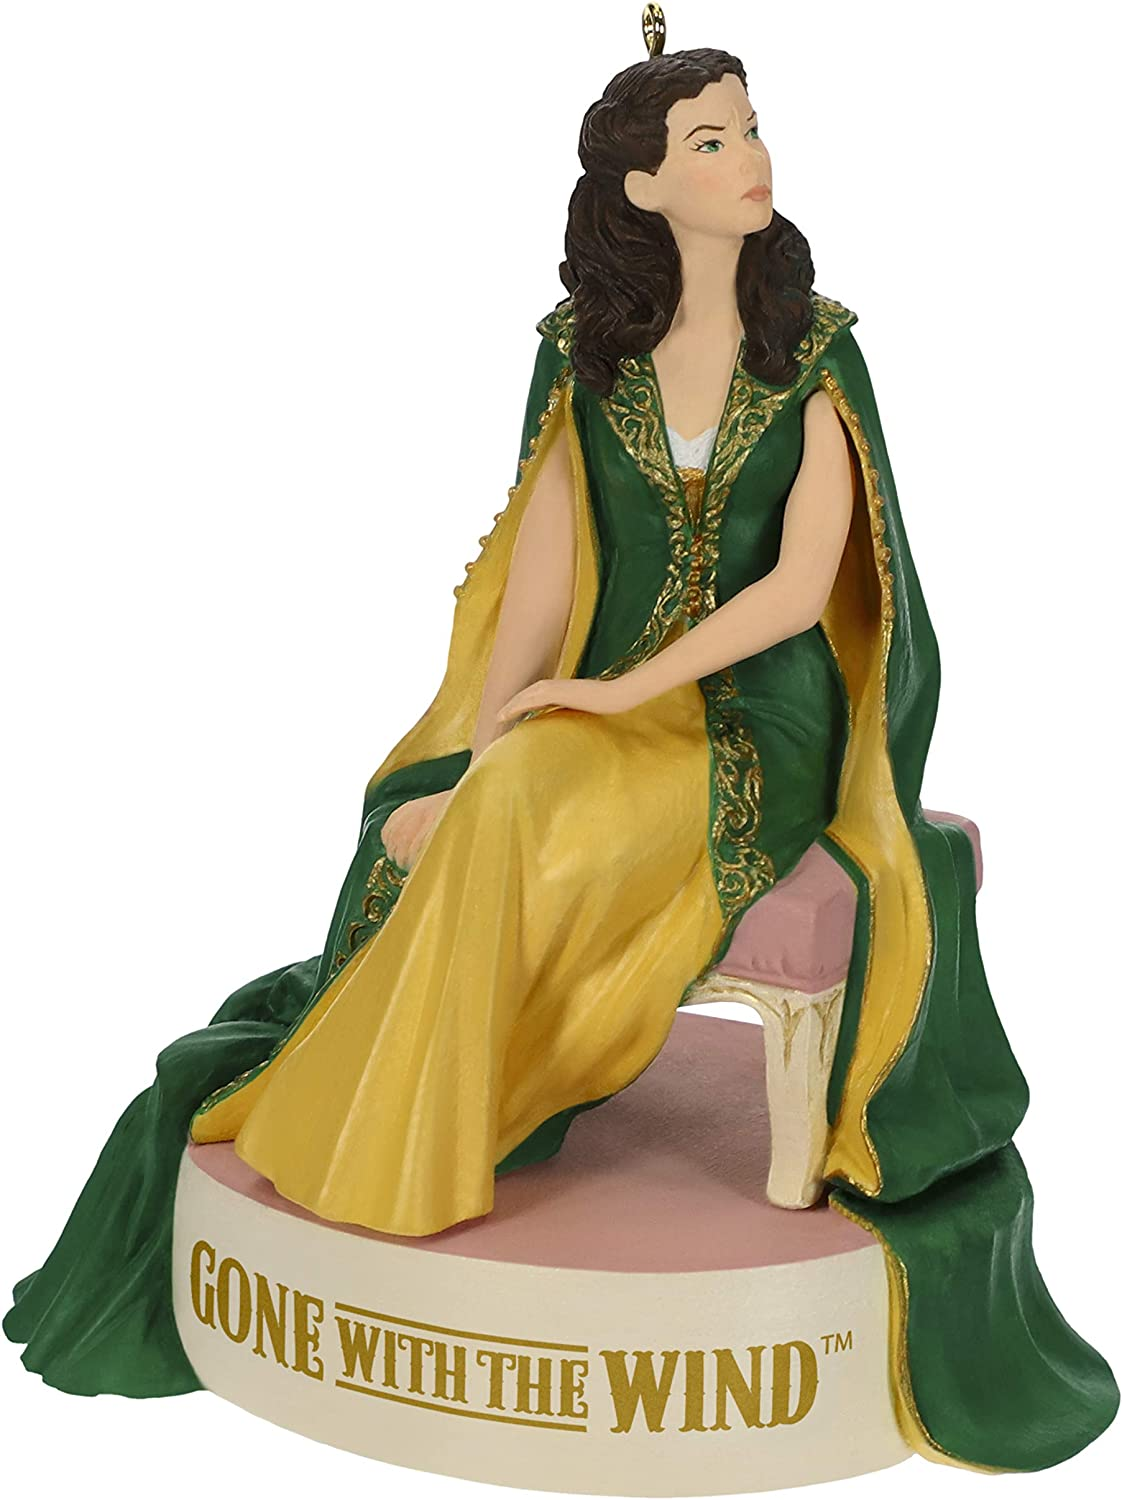 Hallmark 2018 Scarlett/'s Christmas Dress Gone With the Wind Ornament